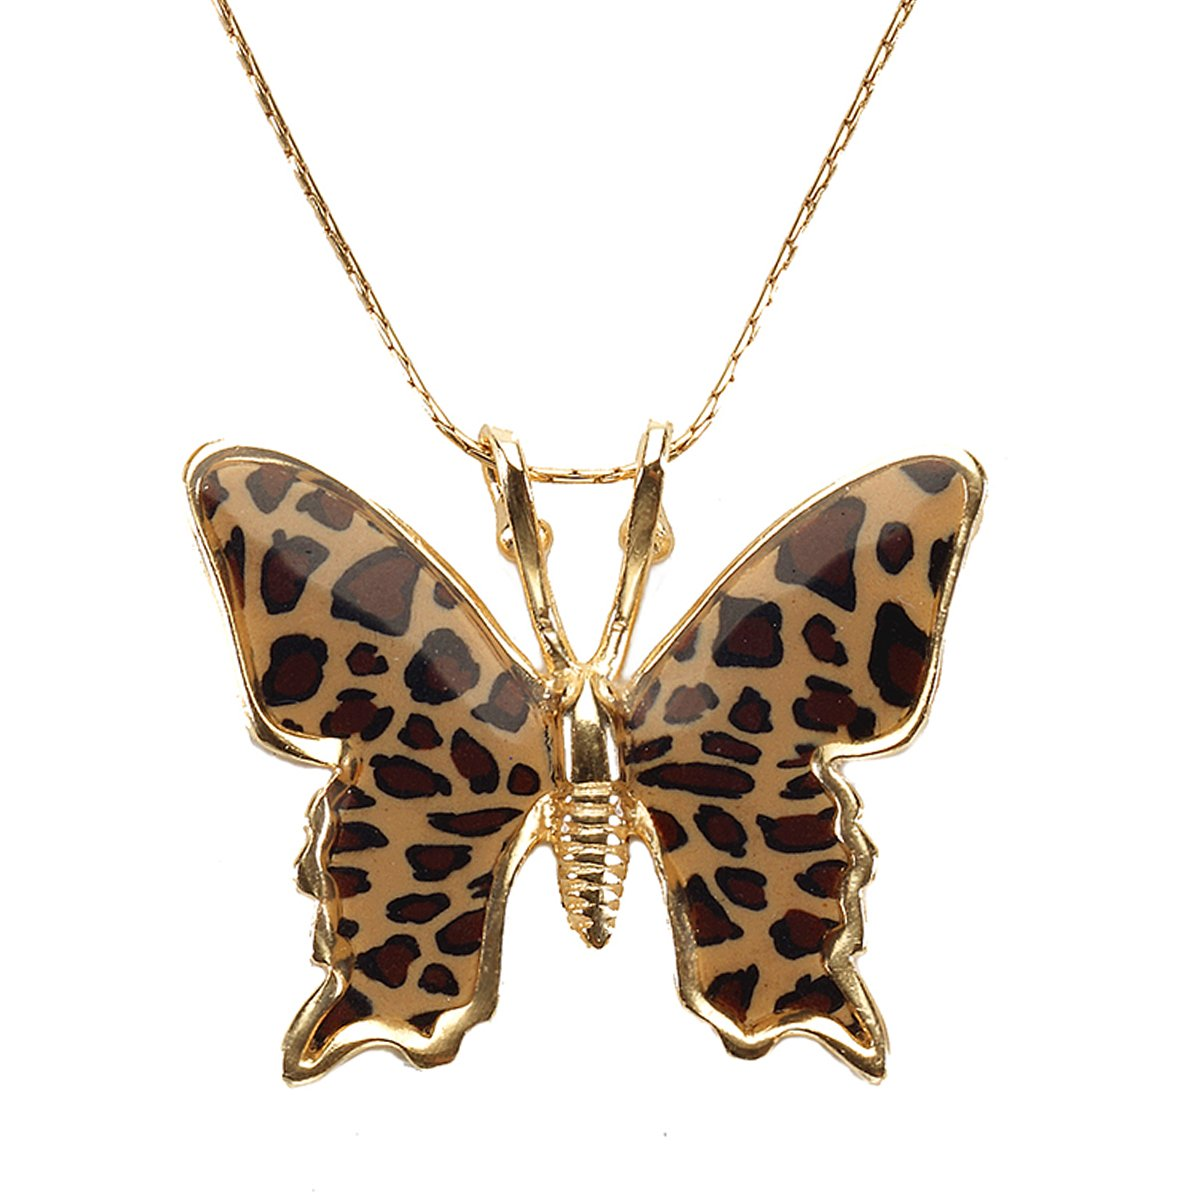 Gold Plated Sterling Silver Butterfly Necklace Pendant Leopard Print Polymer Clay Handmade Charm Jewelry, 16.5'' Gold Filled Chain